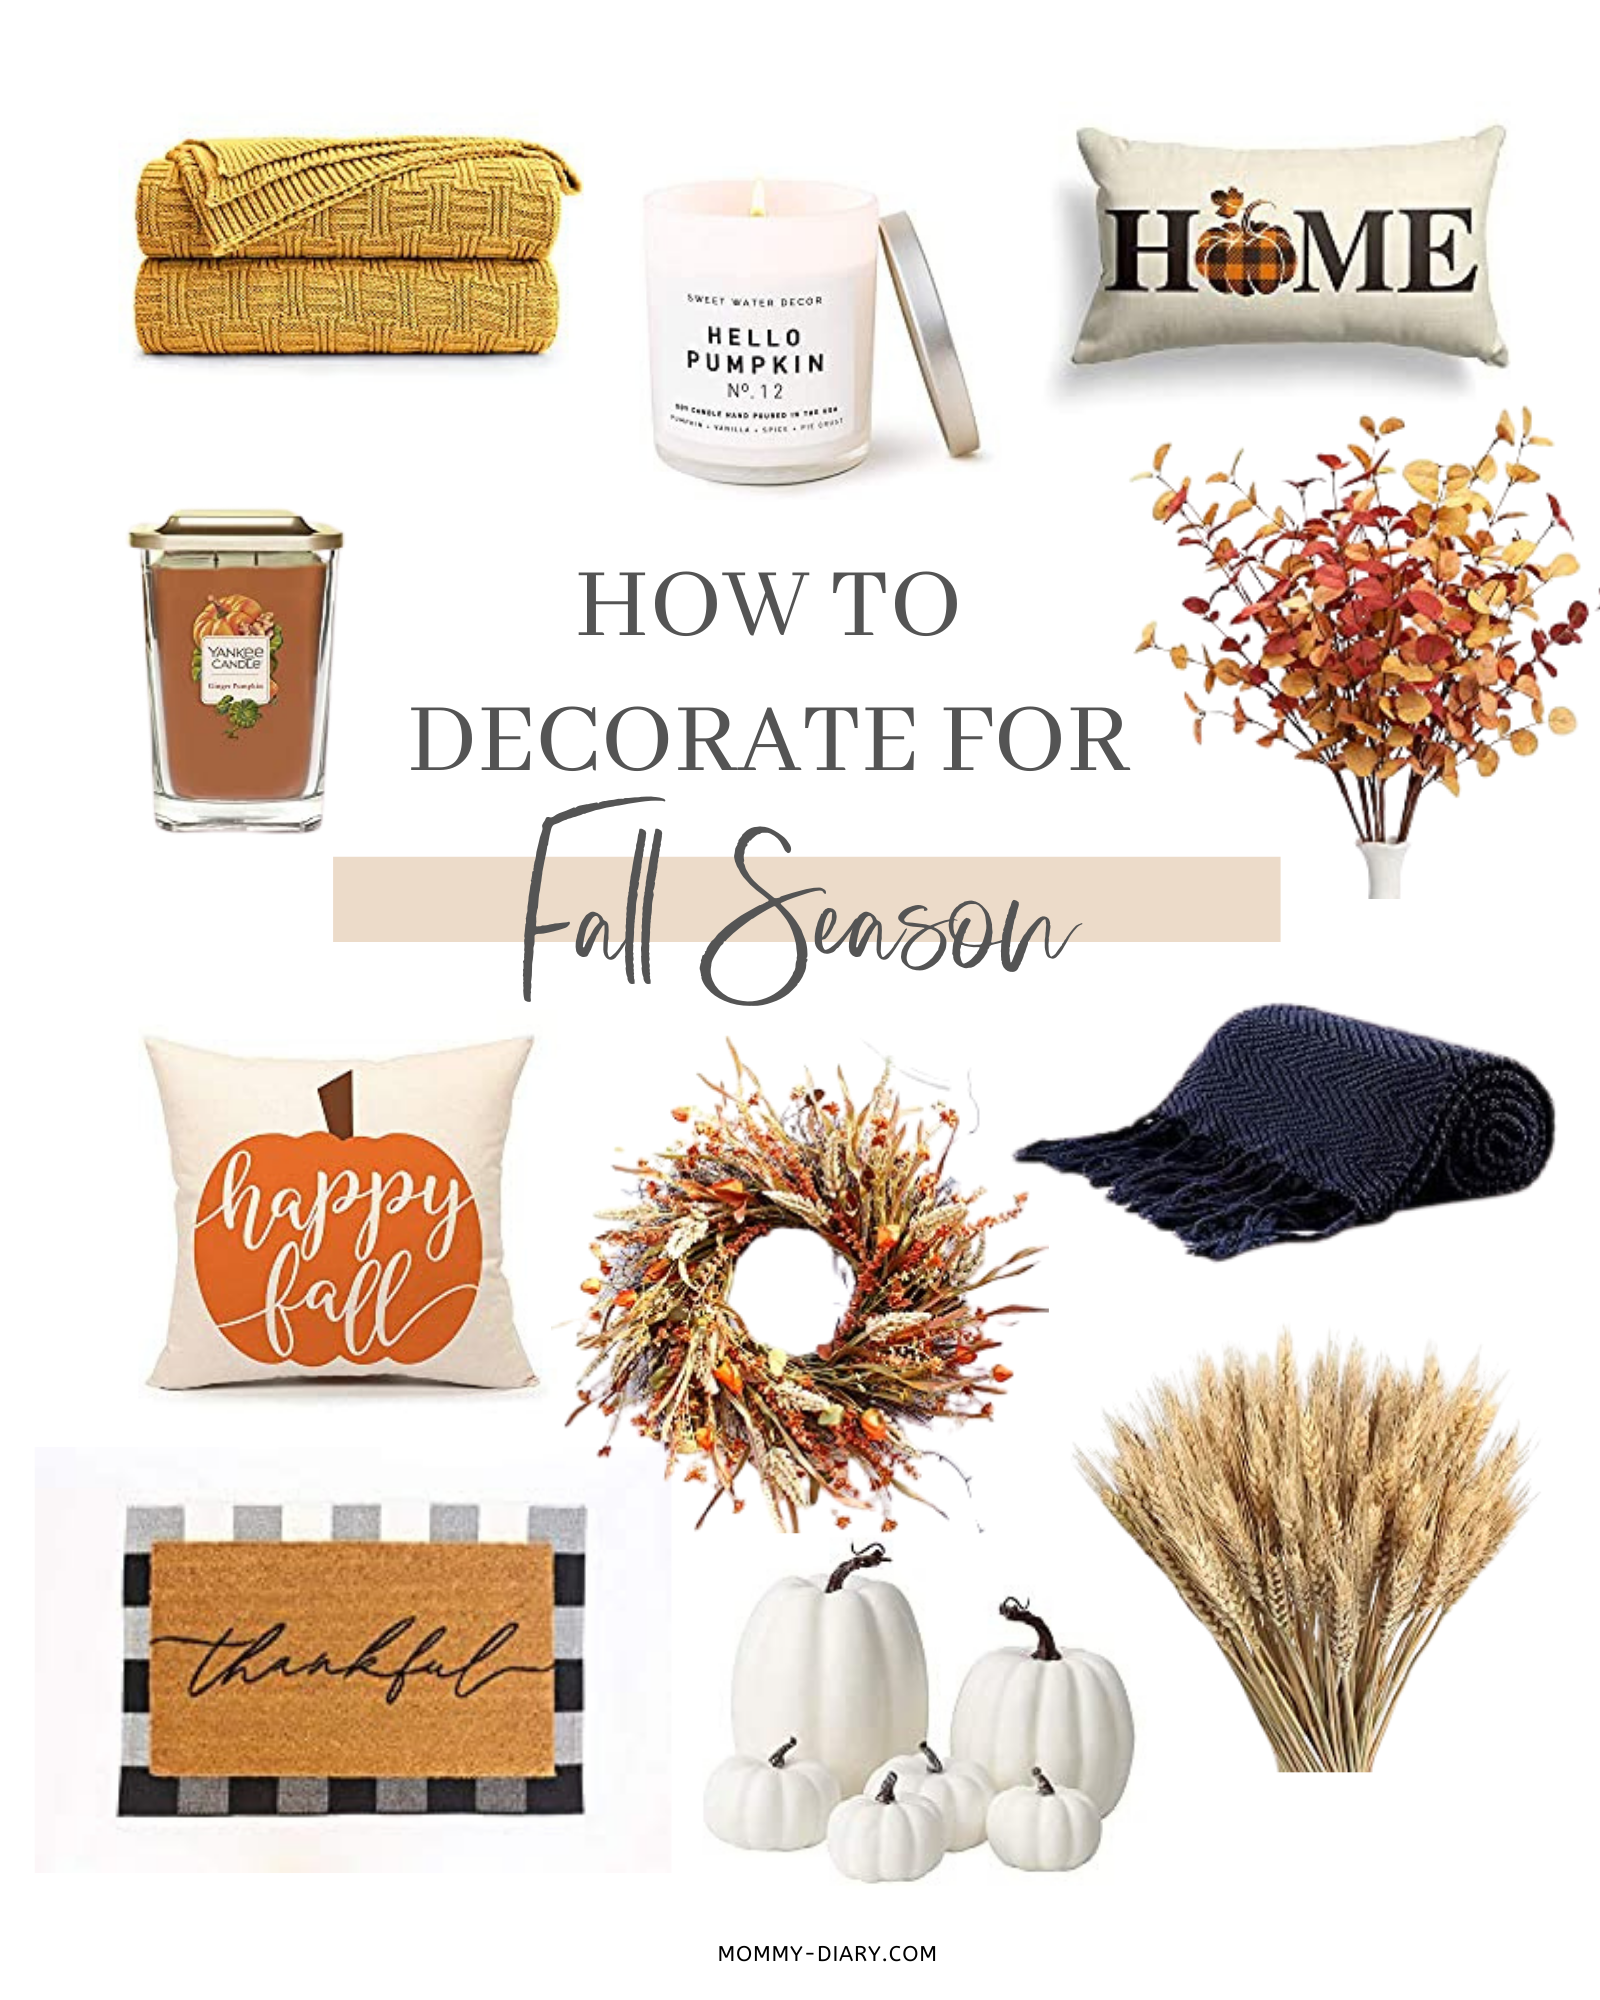 How to Decorate for Fall Season